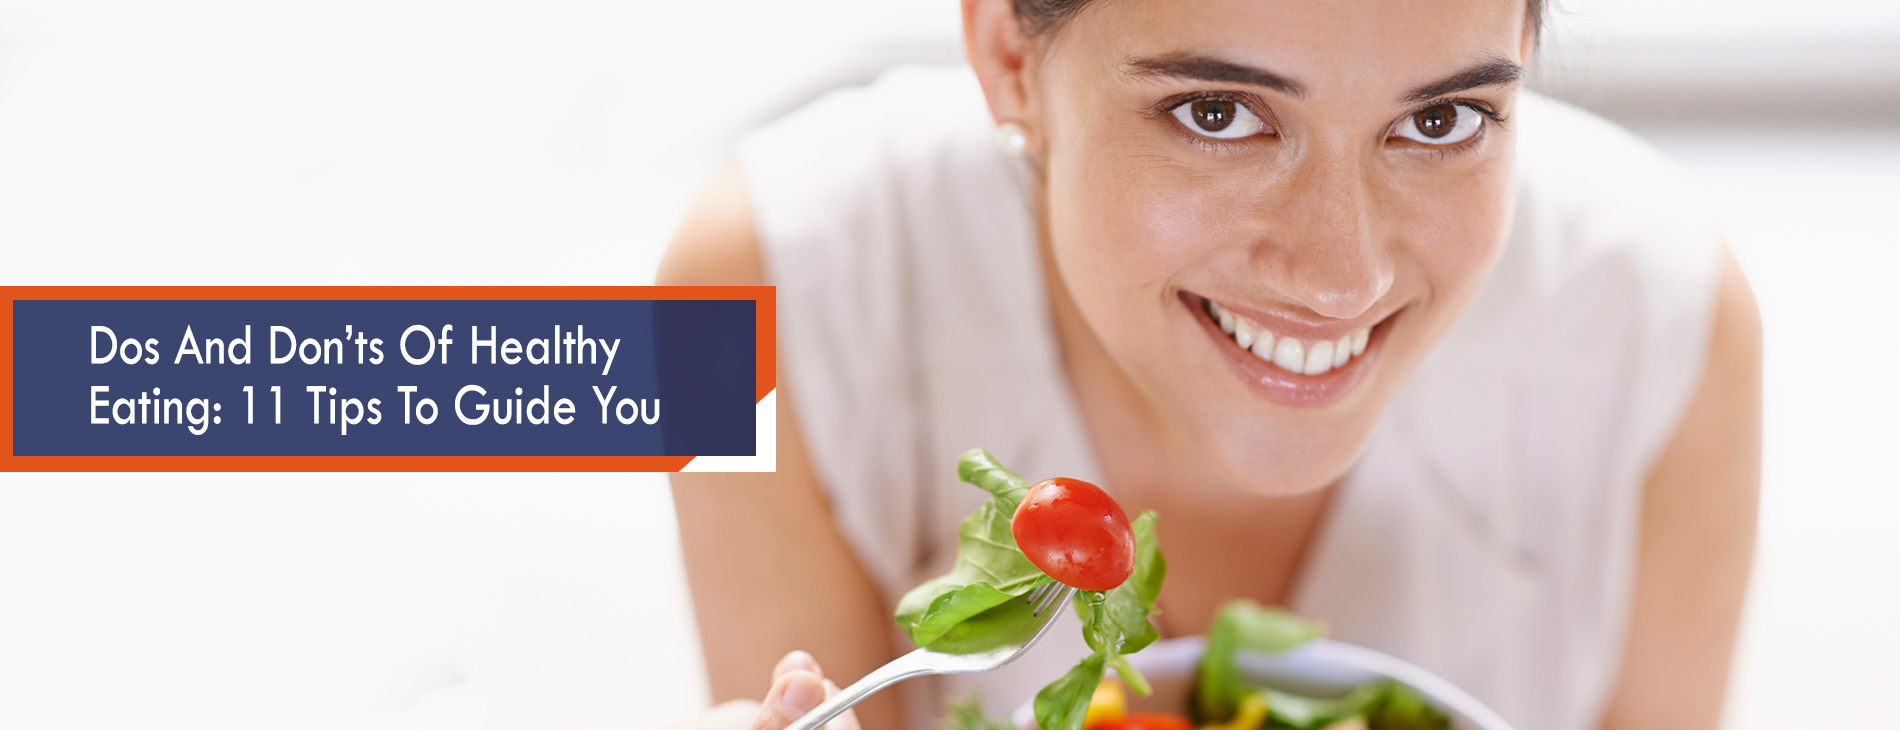 Dos And Don'ts Of Healthy Eating 11 Tips To Guide You